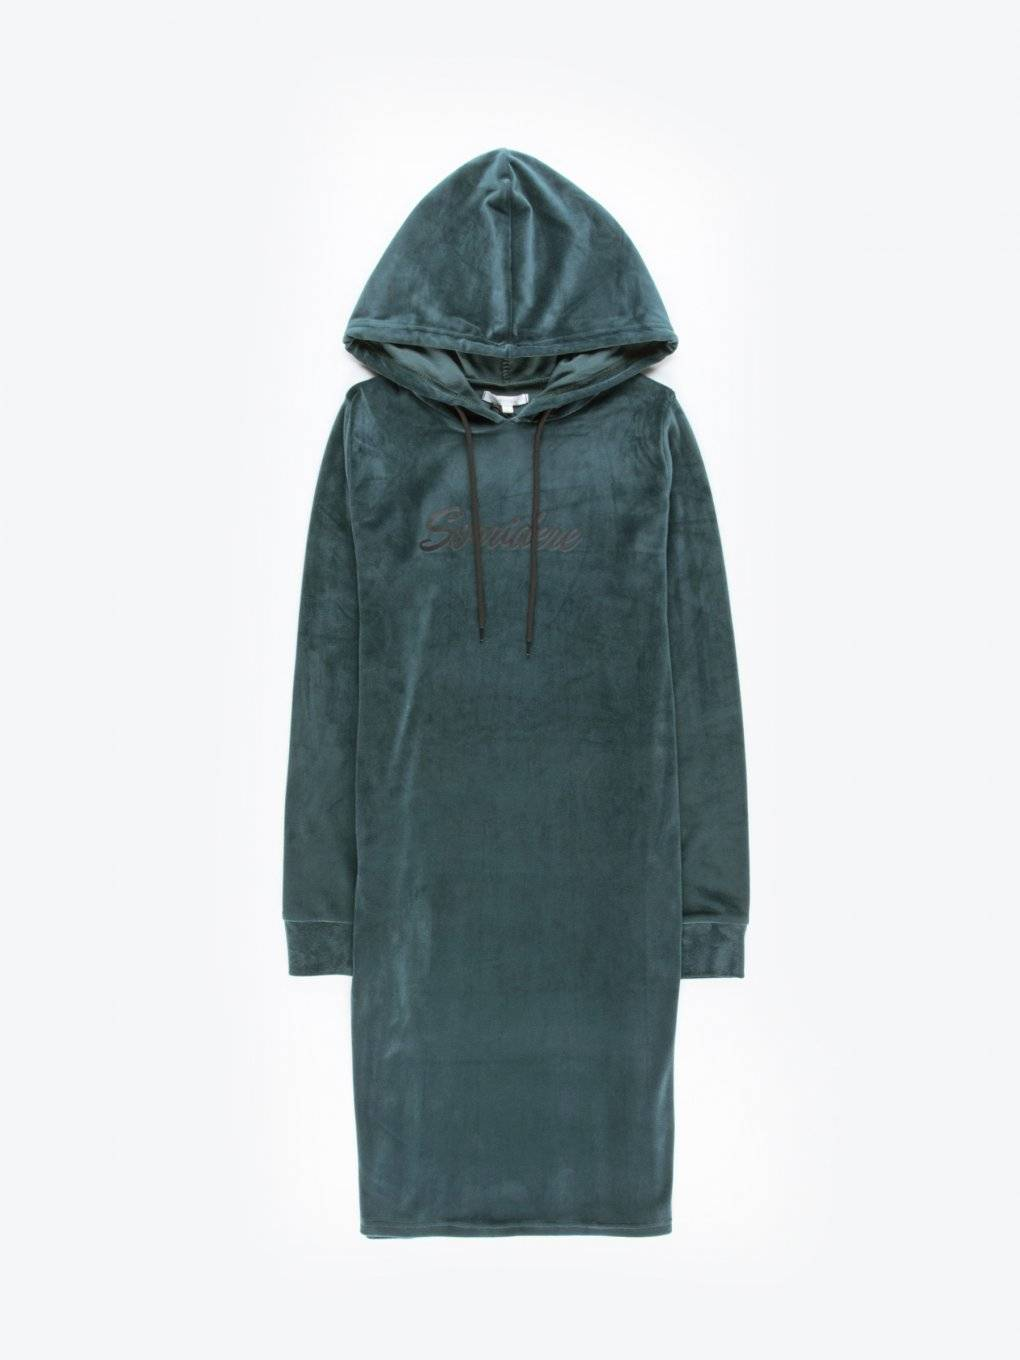 Hooded sweatshirt dress with message print